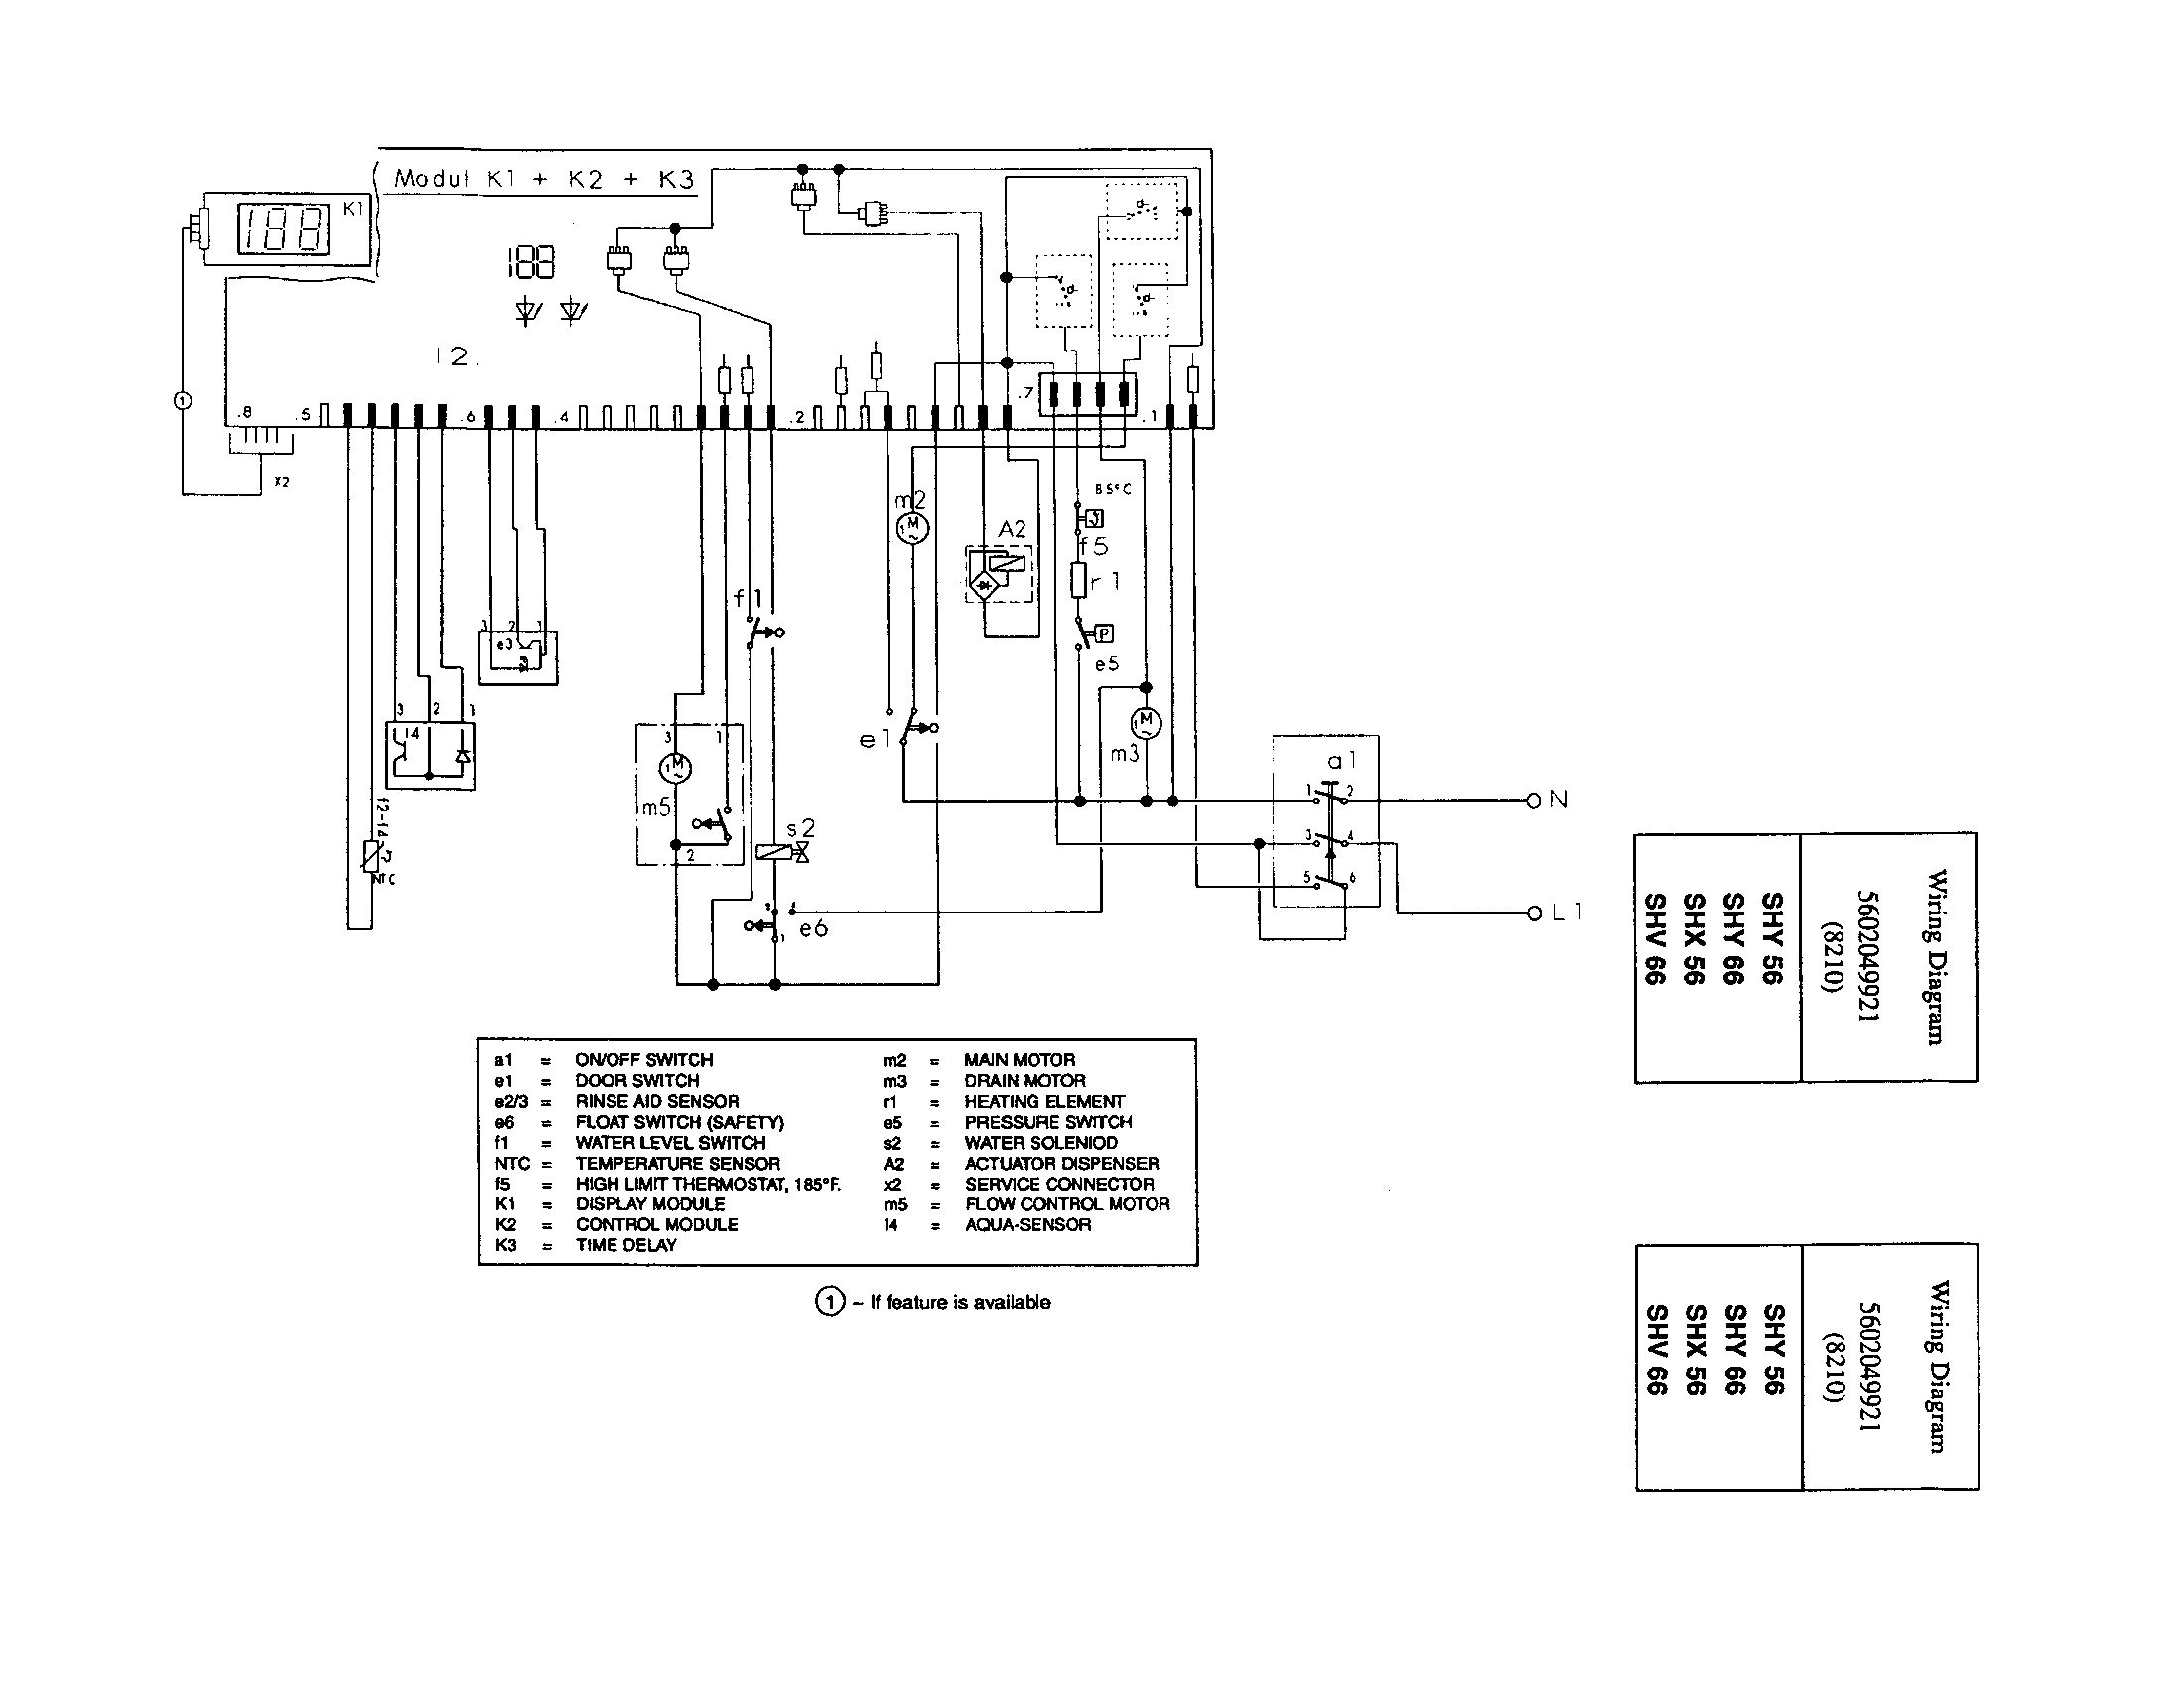 Wiring Diagram Bosch Dishwasher Shx5av55uc Data Schema Relay 8211 Takes To Go Through A Cycle I Have